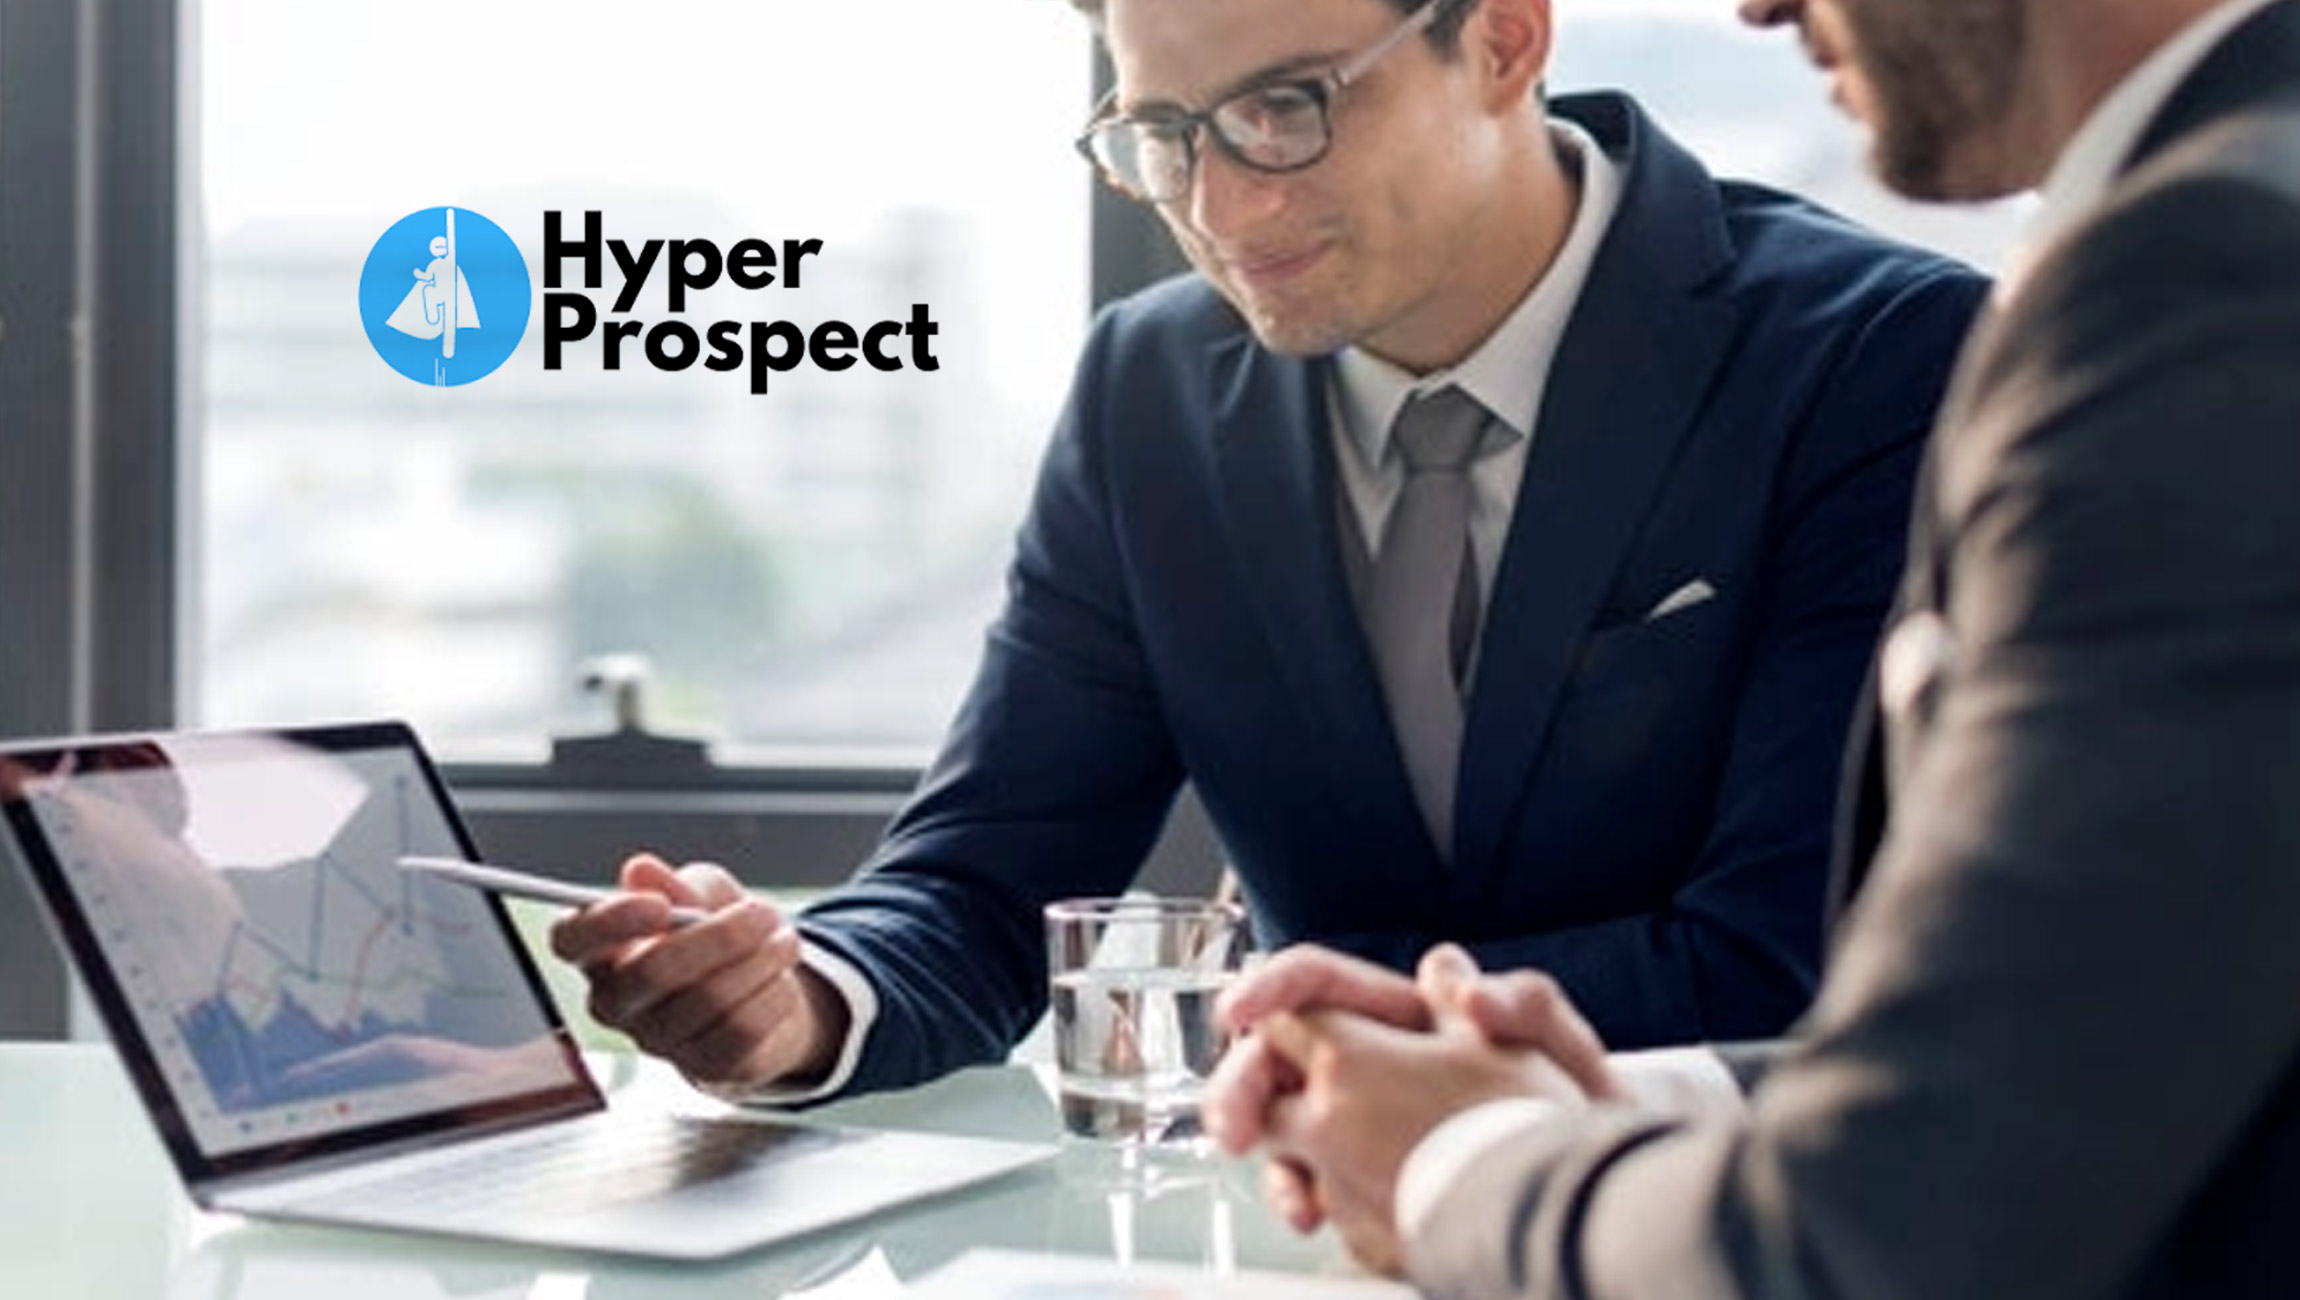 HyperProspect Launches Automated Sales Process for Businesses